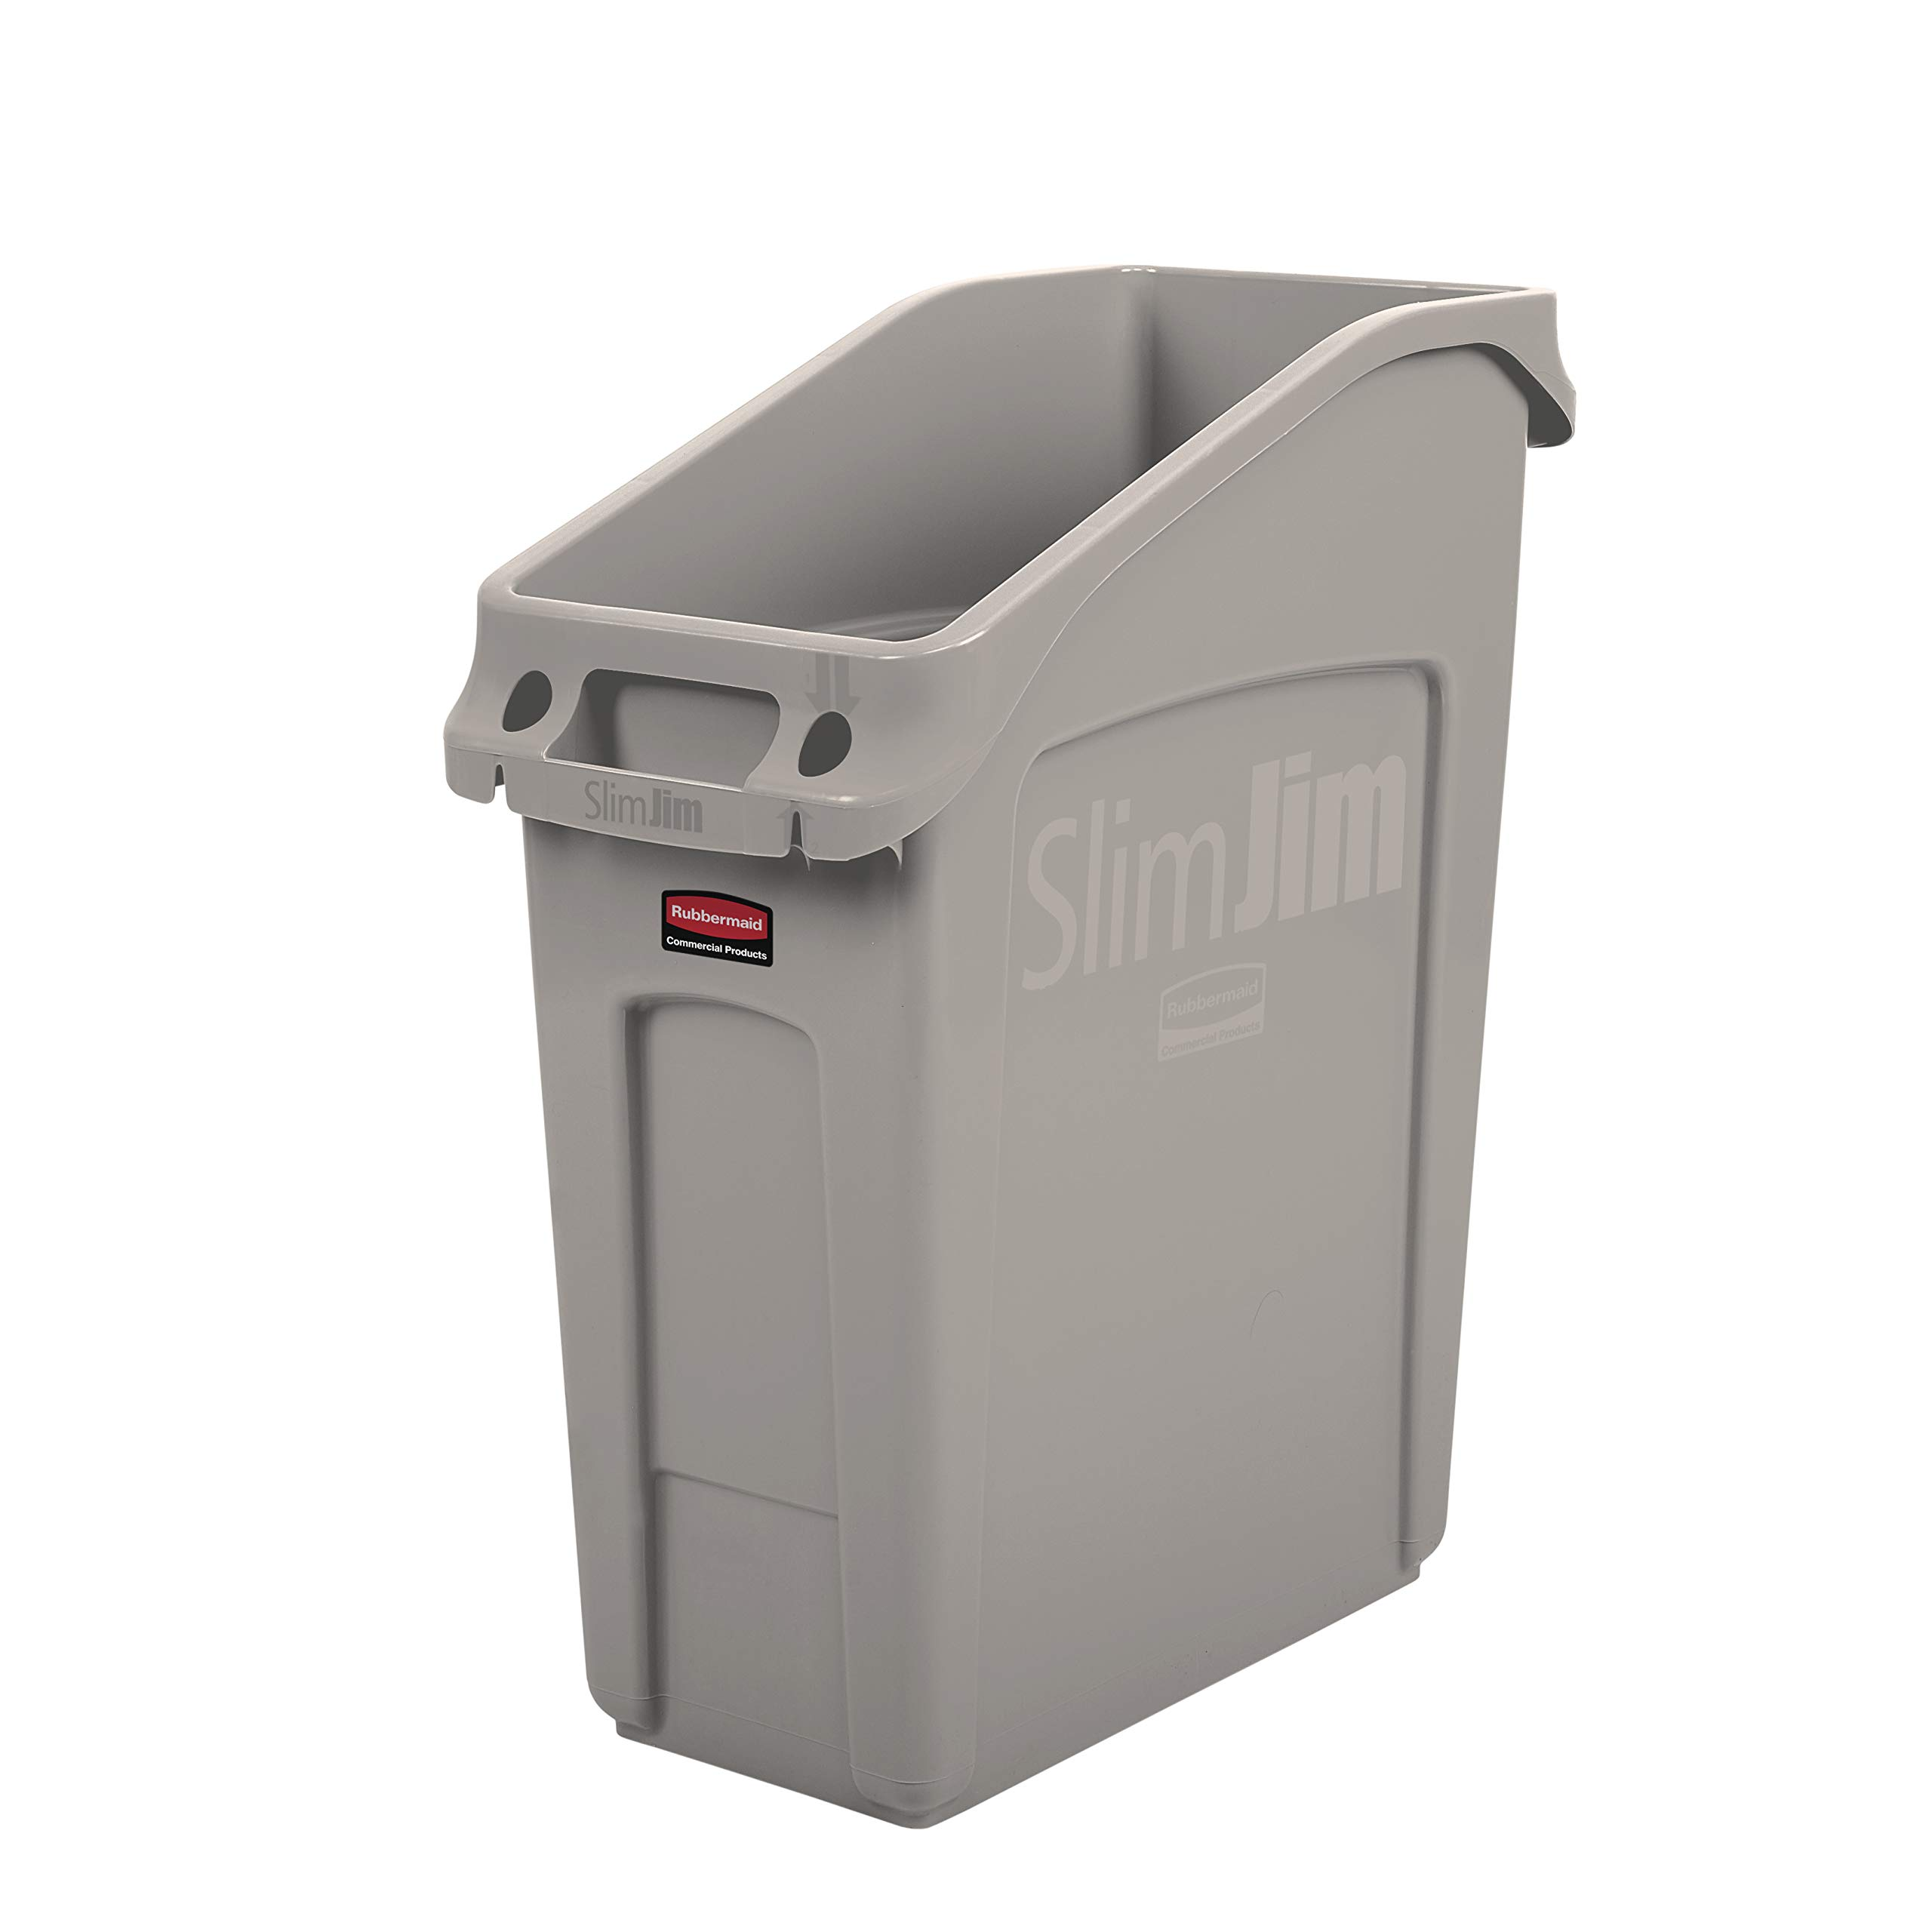 Rubbermaid Commercial Products 2026698 Slim Jim Under-Counter Trash Can with Venting Channels, 13 Gallon, Beige (Pack of 4)